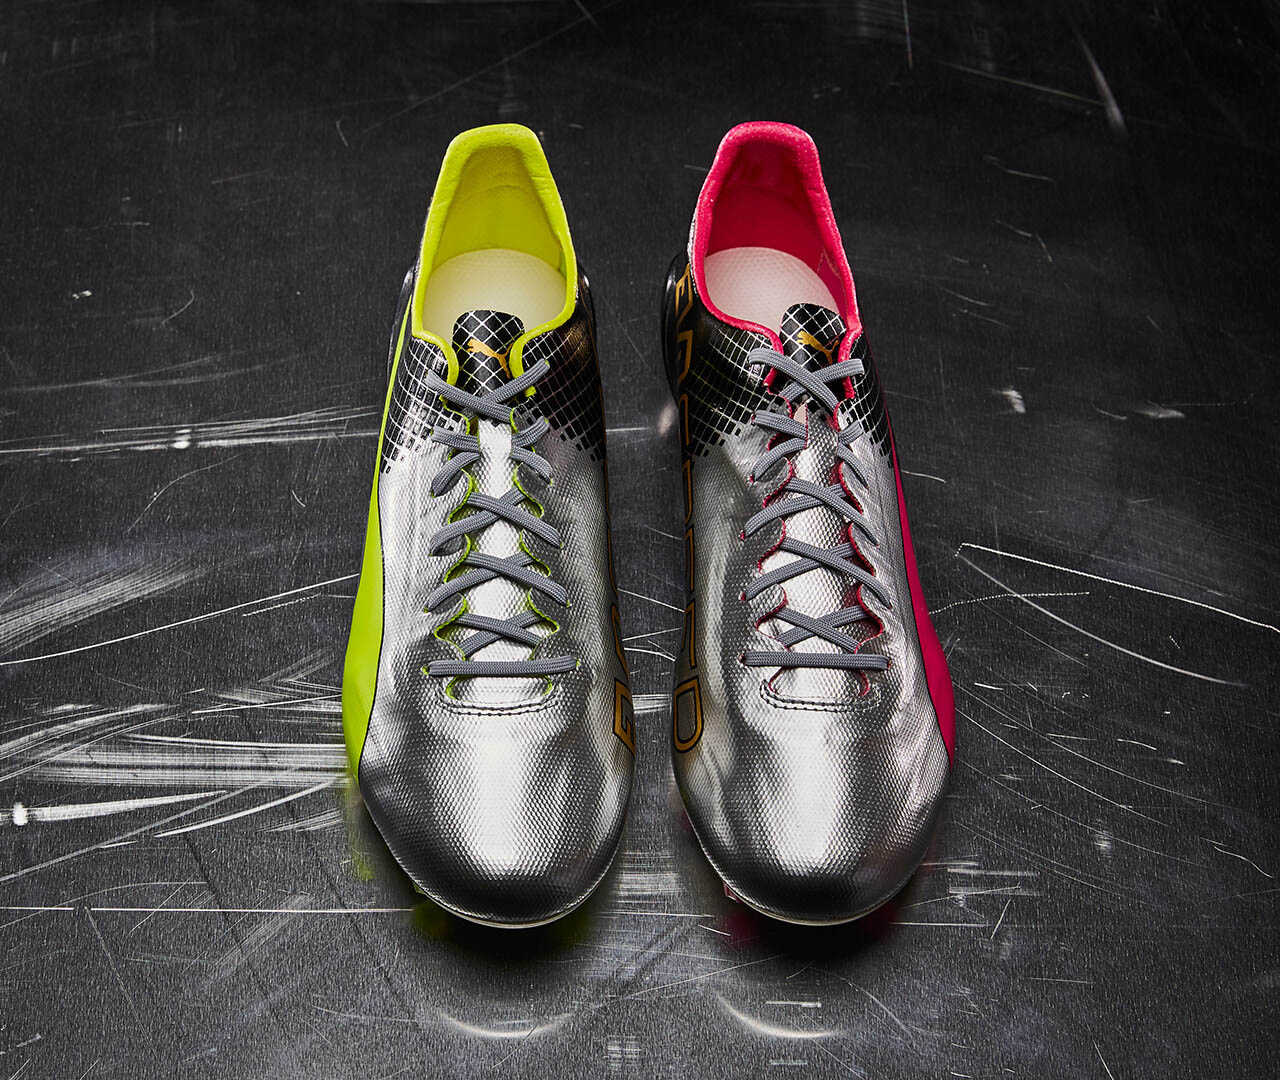 Puma Evospeed SL II Celebration Pack